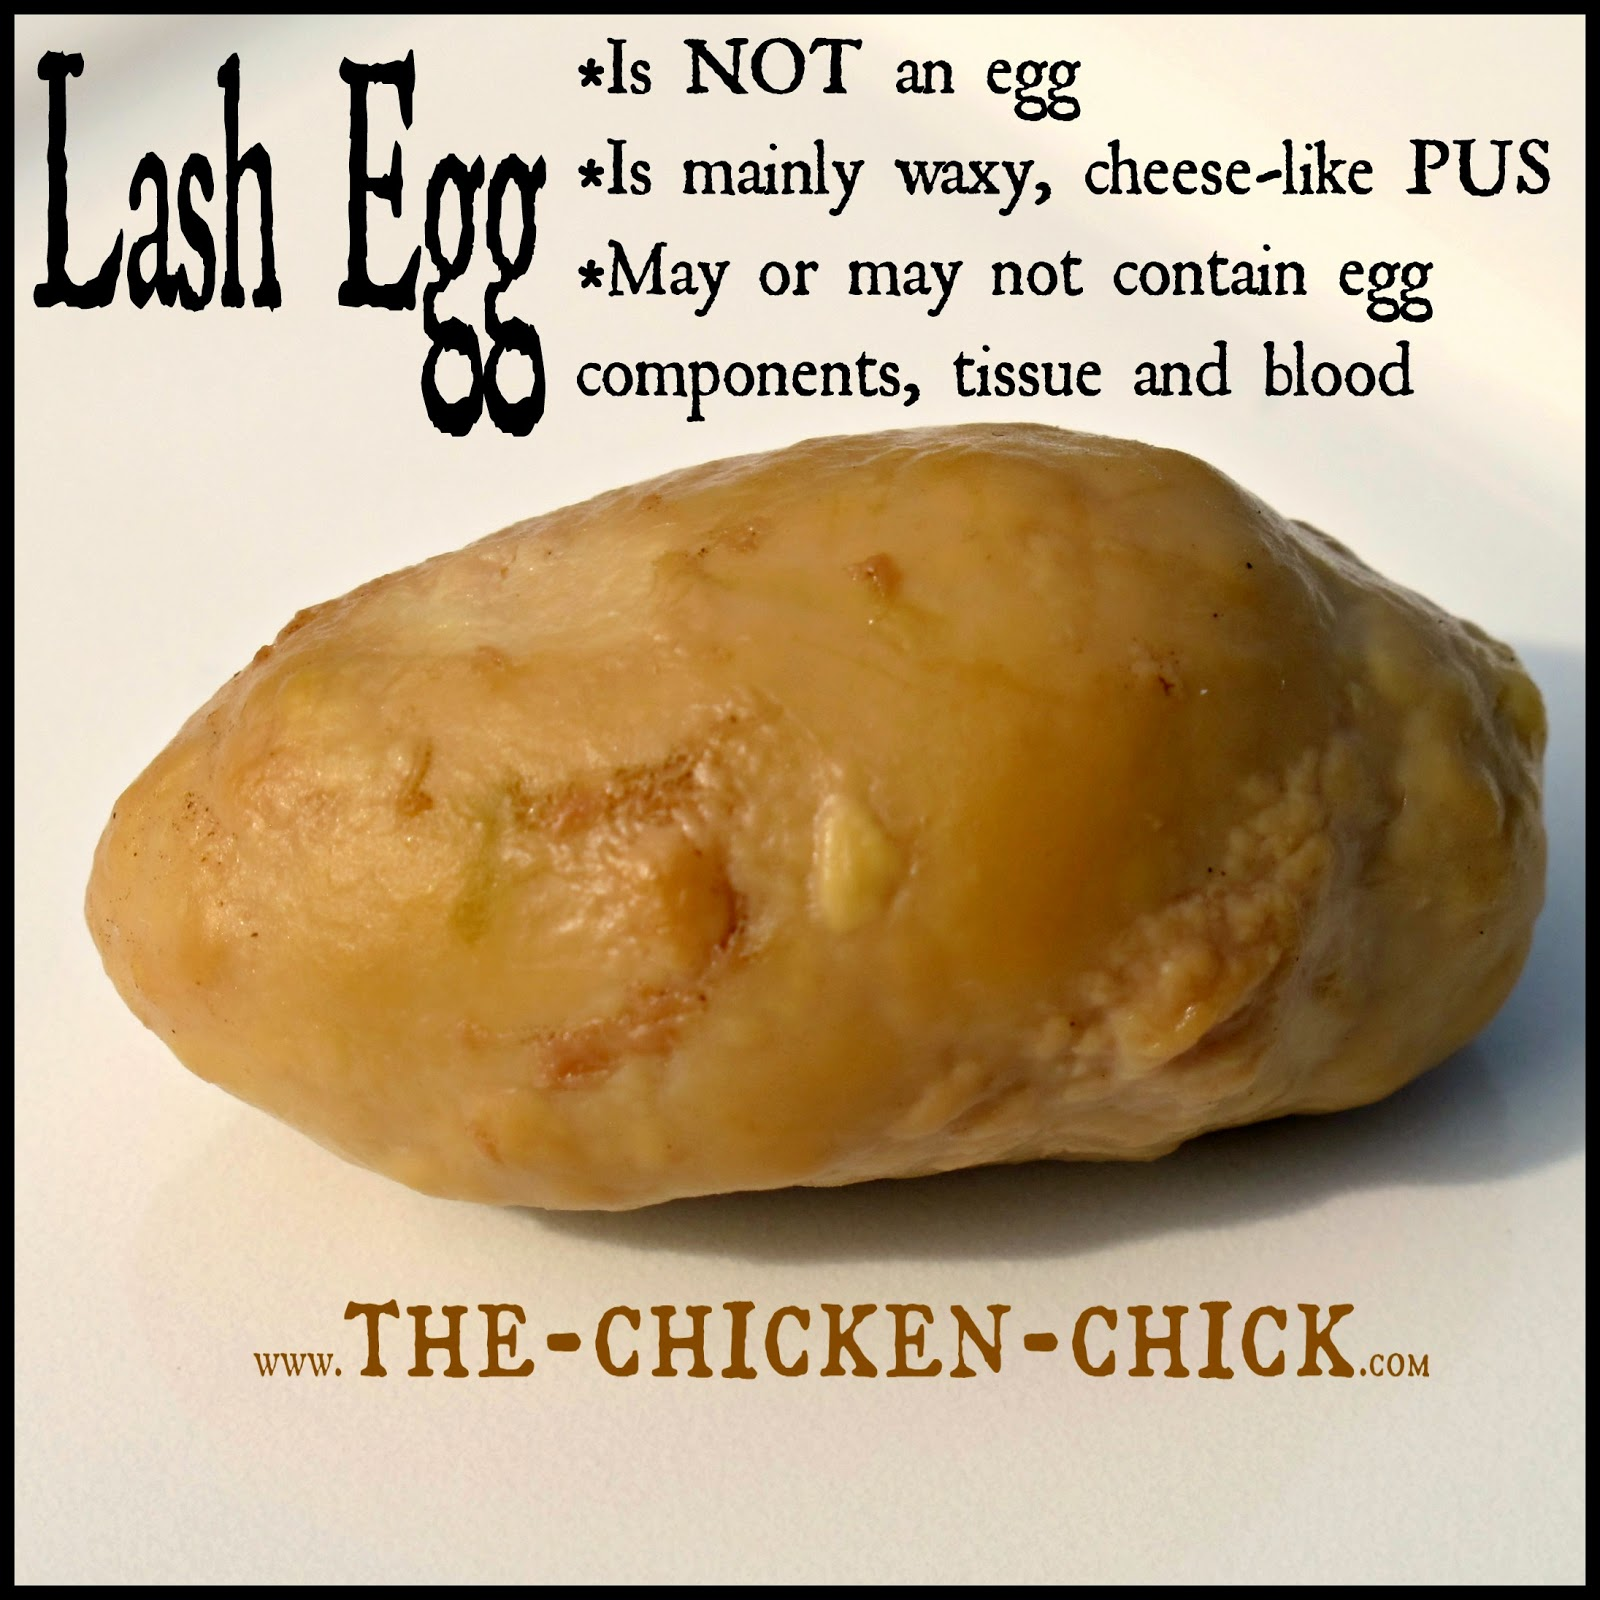 Lash eggs consist primarily of coagulated pus, not yolk or egg white. I took the liberty of  renaming the lash egg more appropriately, a Pus Coagulegg.  It's got a nice ring to it, don't you think? Unfortunately for the hen, the Pus Coagulegg is no laughing matter as the prognosis for a bird producing them is poor, at best.